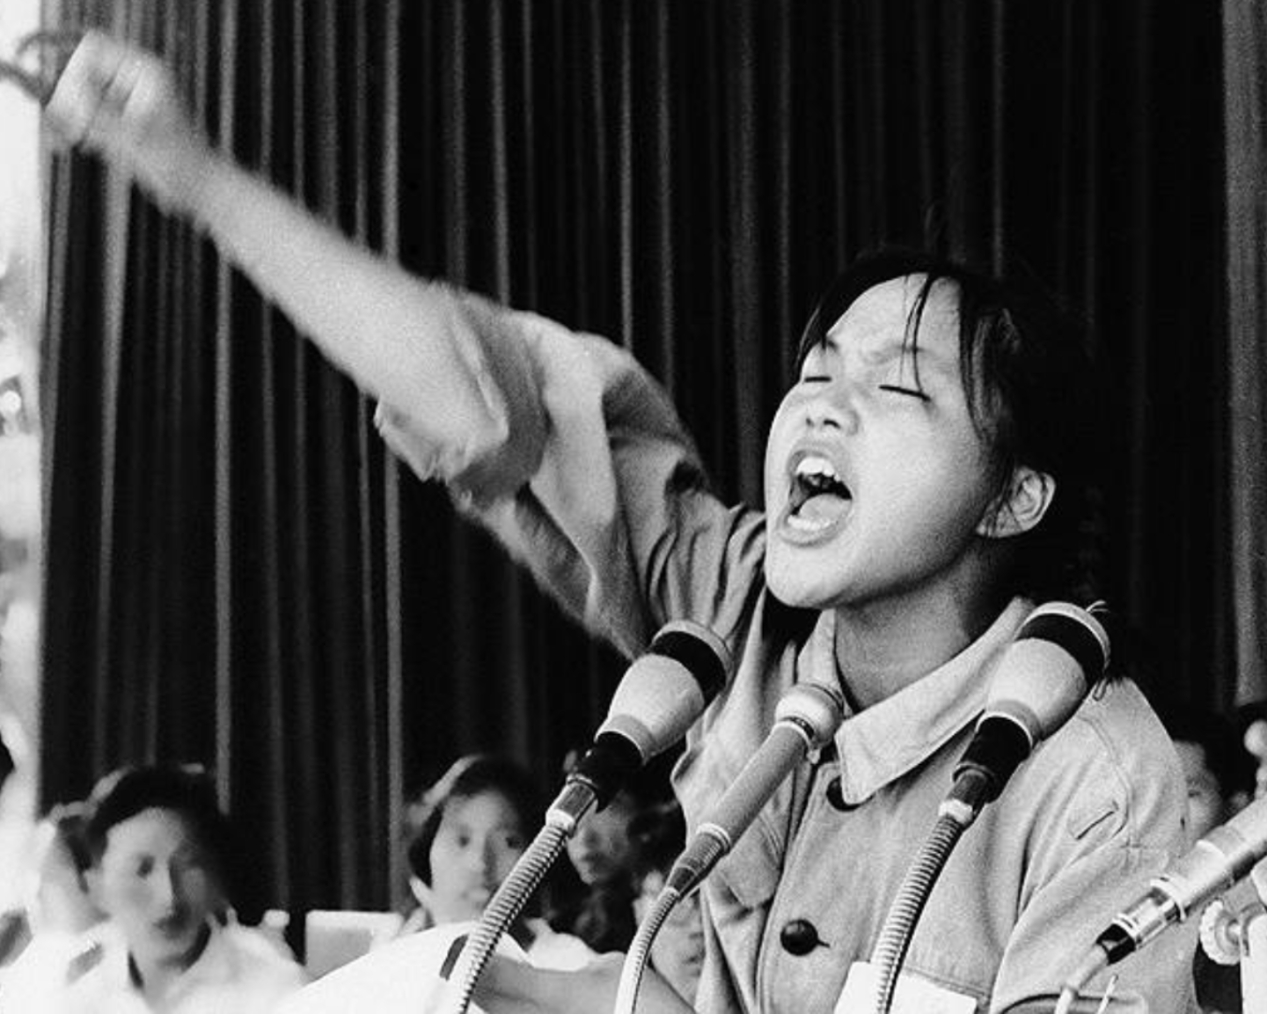 15 years old Mis Choo, an active supporter of Red Guards